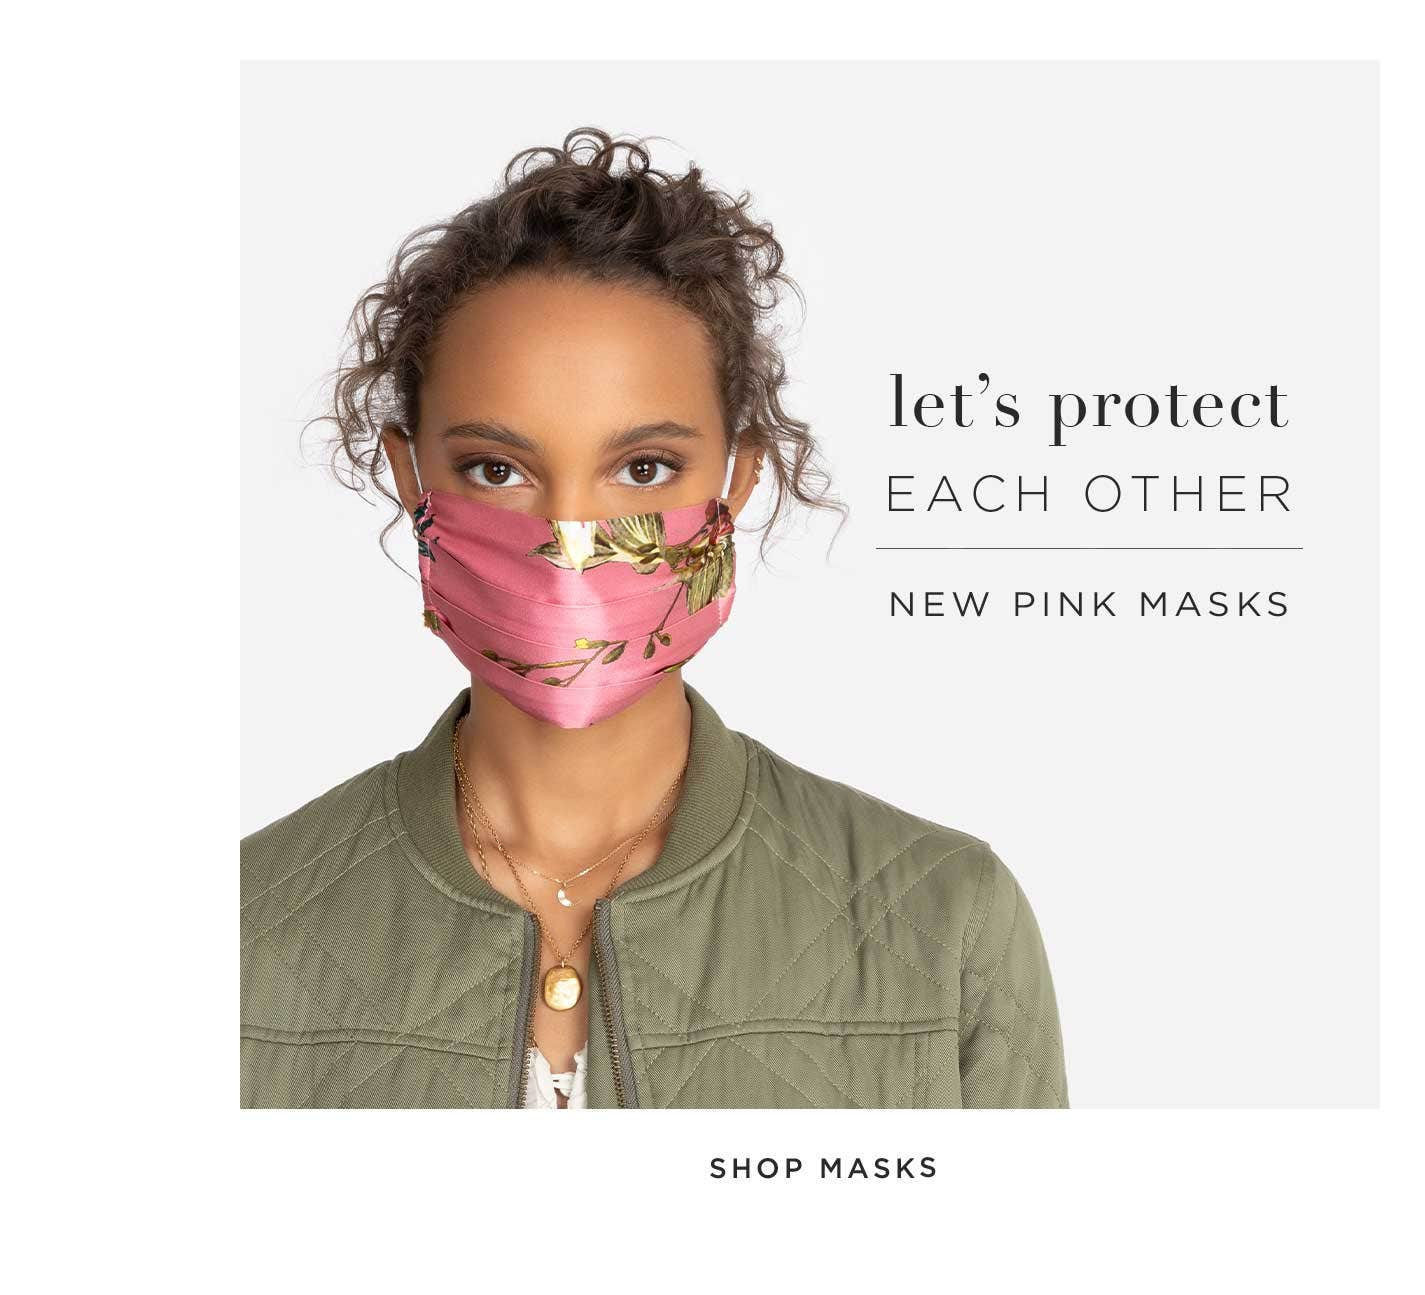 Let's Protect Each Other - New Pink Masks - Shop Masks